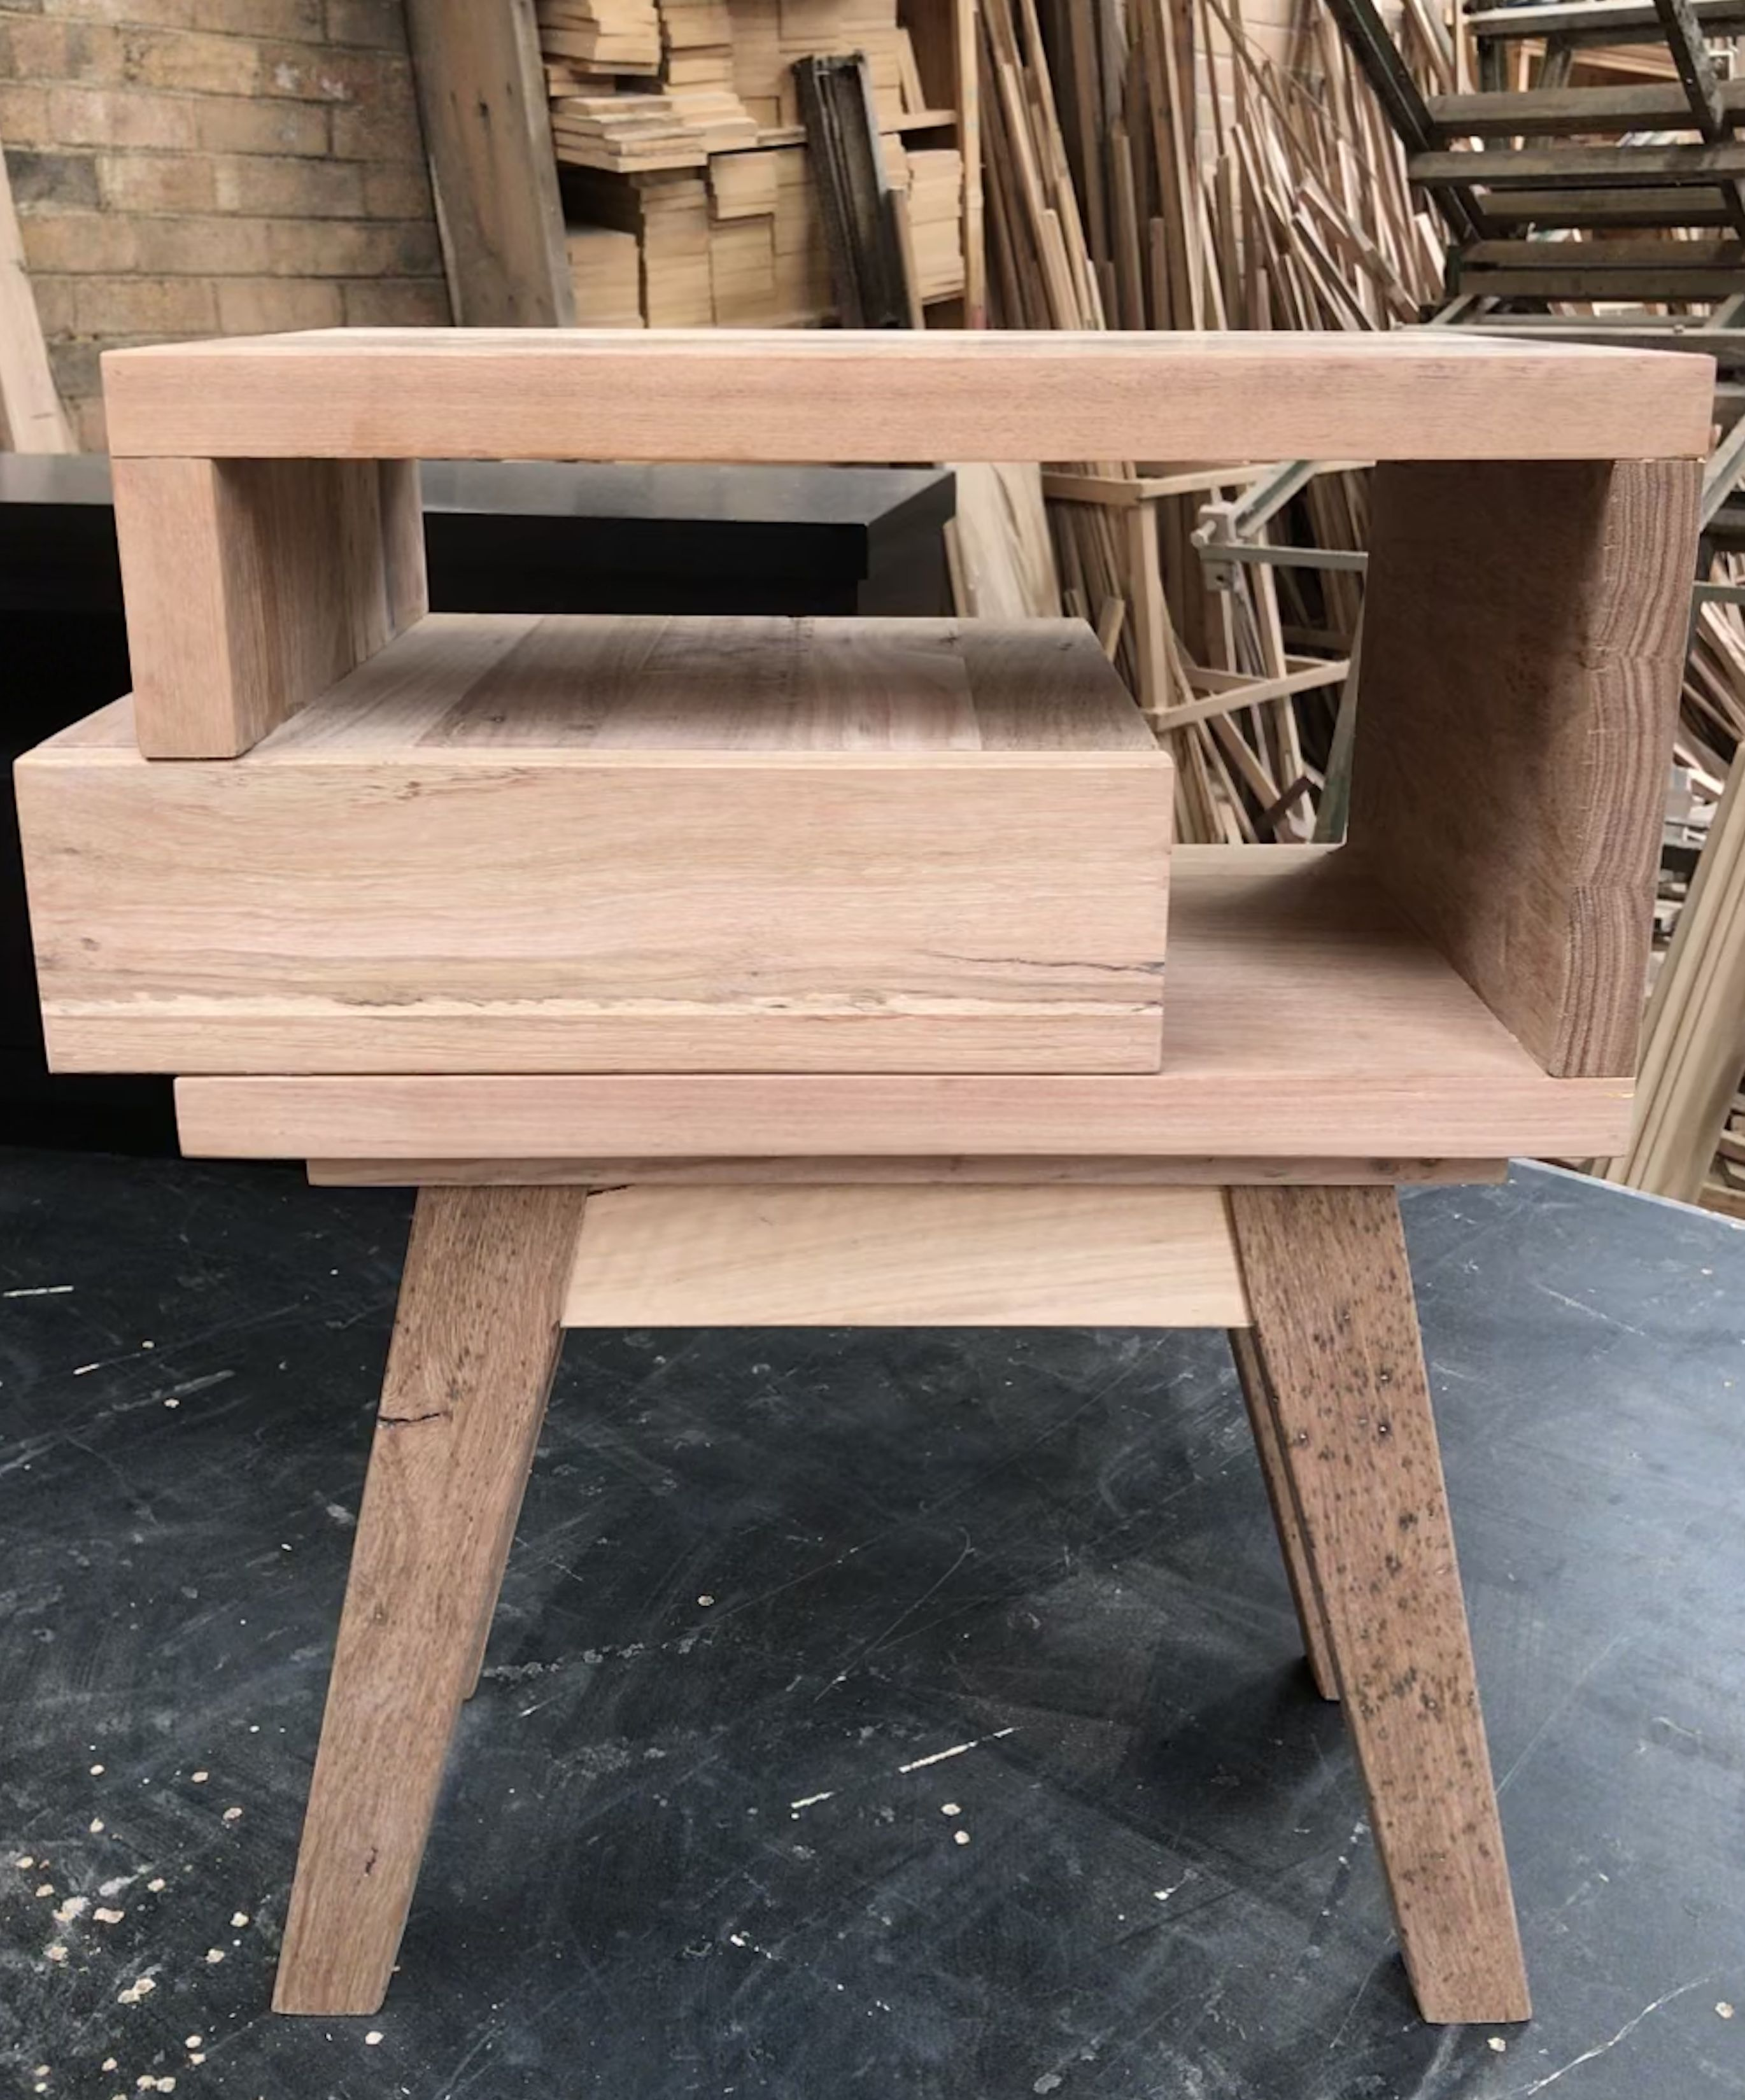 Bedside table by Jun Furniture, Step stool, Decor